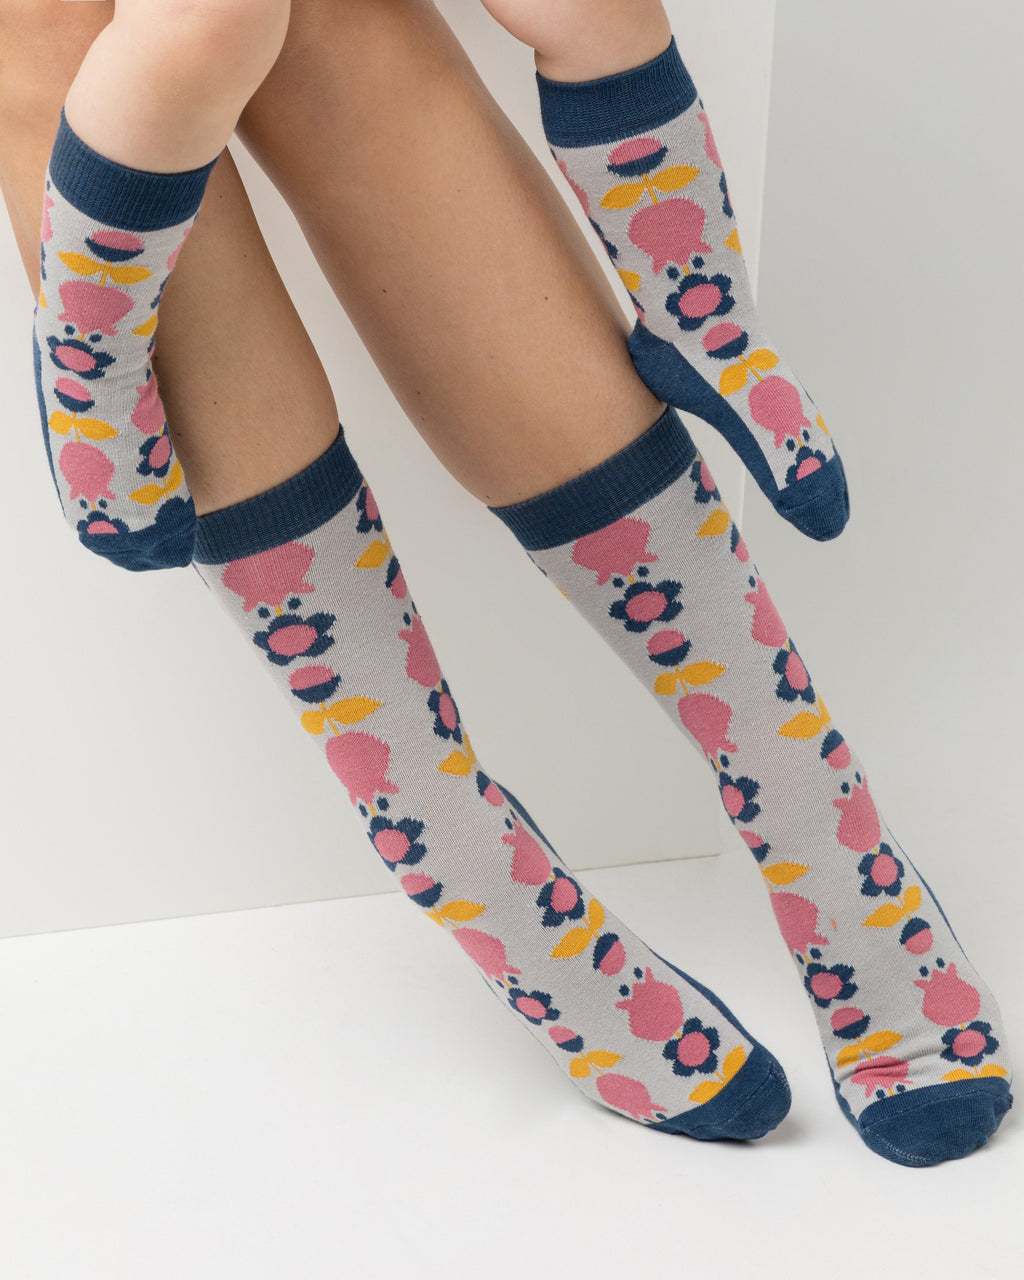 variant_7 | EN Blue Socks with Print Kids | DE Blaue Socken mit Print Kinder